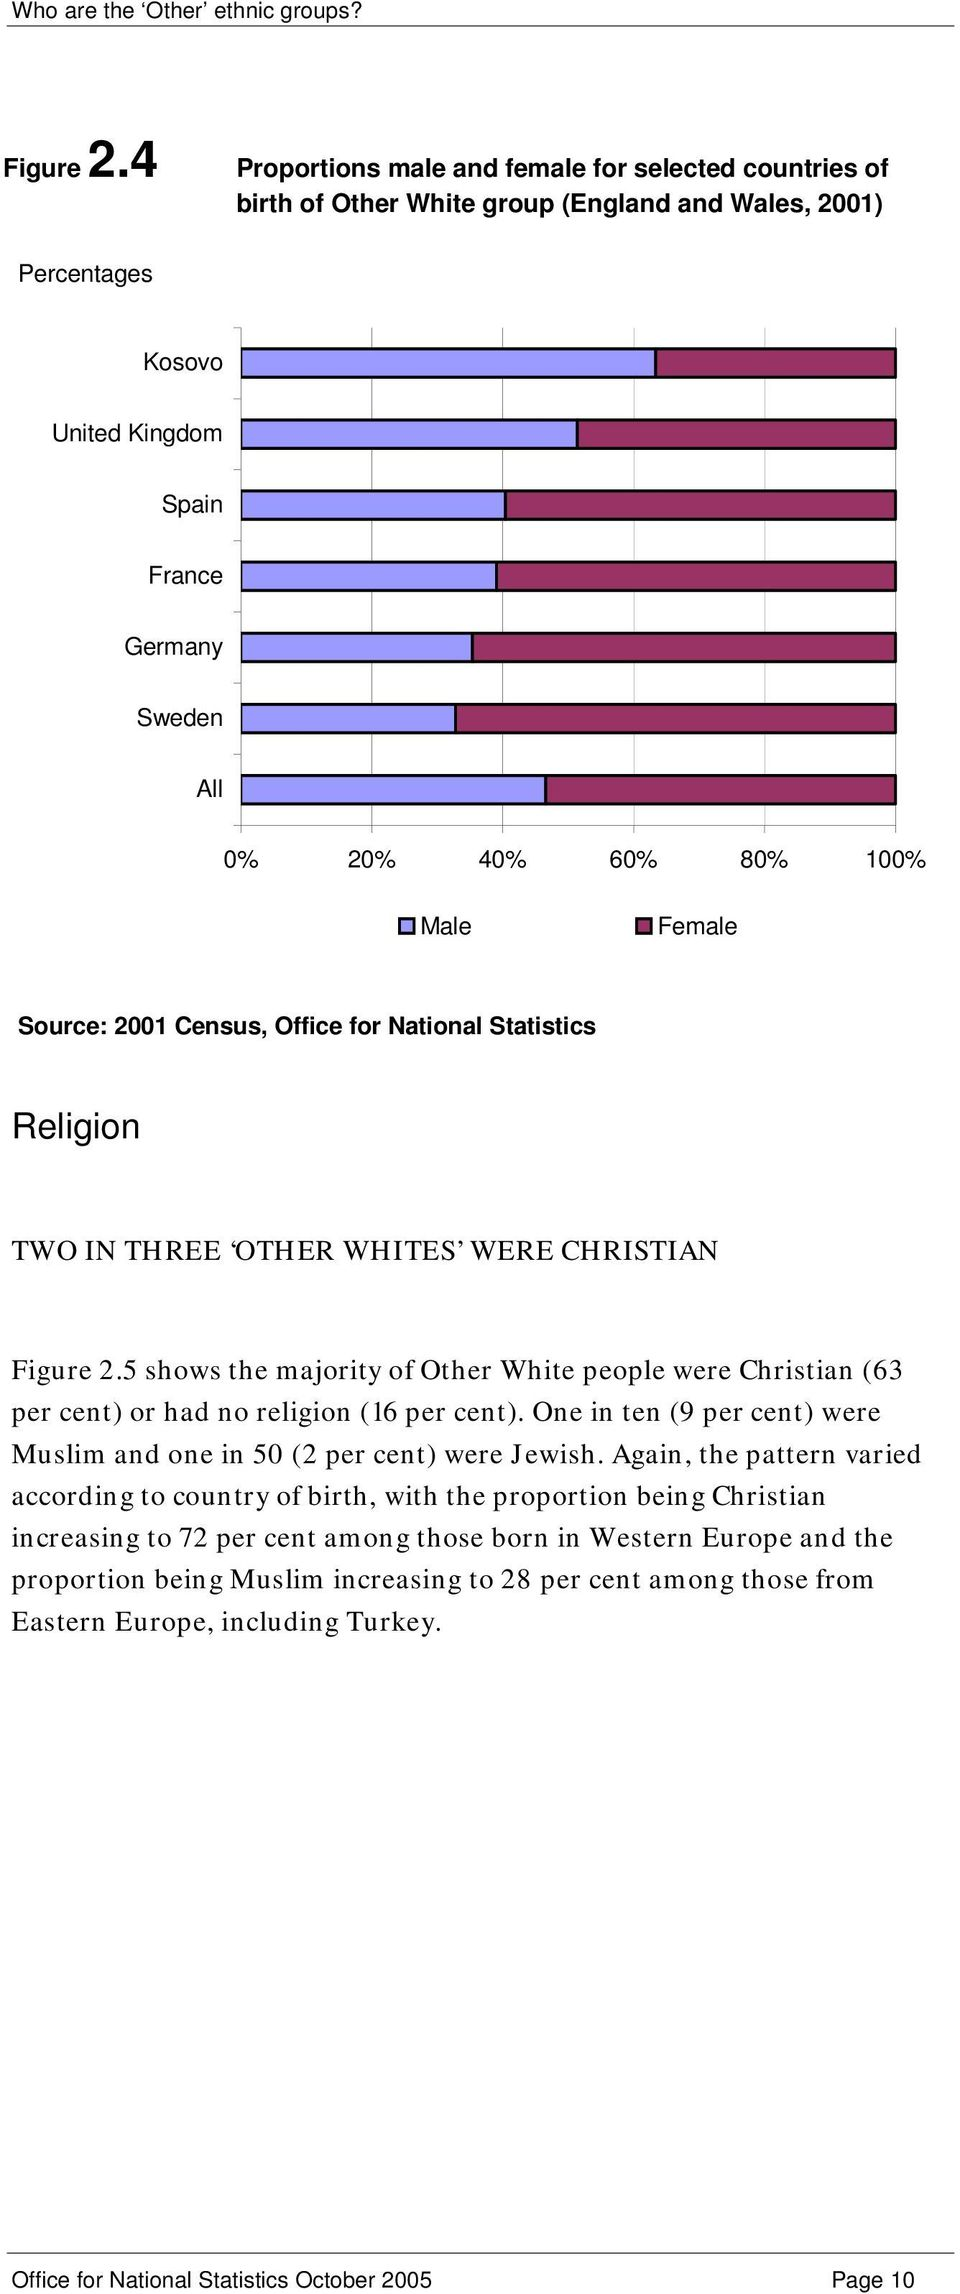 Religion TWO IN THREE OTHER WHITES WERE CHRISTIAN 5 shows the majority of Other White people were Christian (63 per cent) or had no religion (16 per cent).